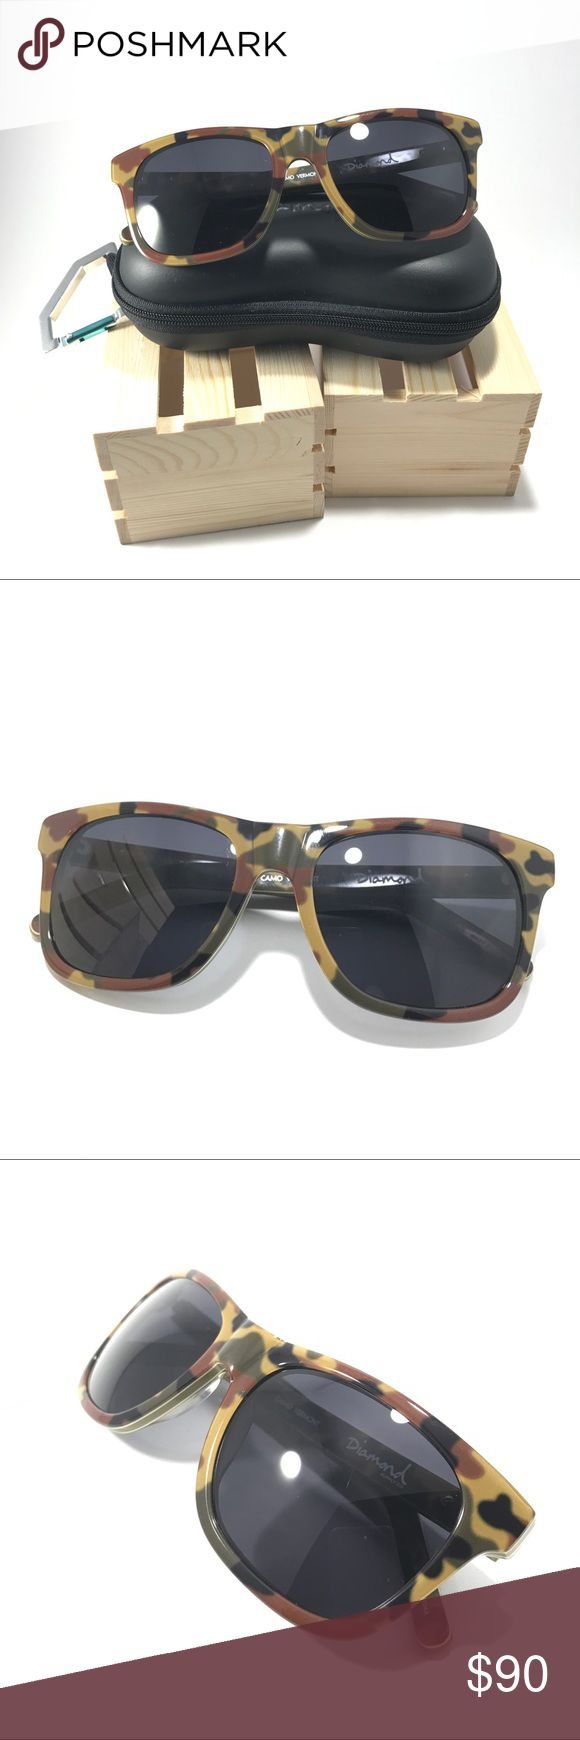 DIAMOND SUPPLY CO. Camo Sunglasses SOLD OUT style. Durable frame, metal diamond rivets on each temple, & polarized lenses. Comes with zip up hard case & microfiber bag. There is a thin hairline scratch on the left lens, unnoticeable when wearing & hard to capture in picture.Frames are in great condition & would look really cool as prescription glasses!  SELLERS NOTE •Items inspected and described honestly •Items are sold as is •Each order is packaged & SHIPPED SAME/NEXT BUSINESS DAY, unless…